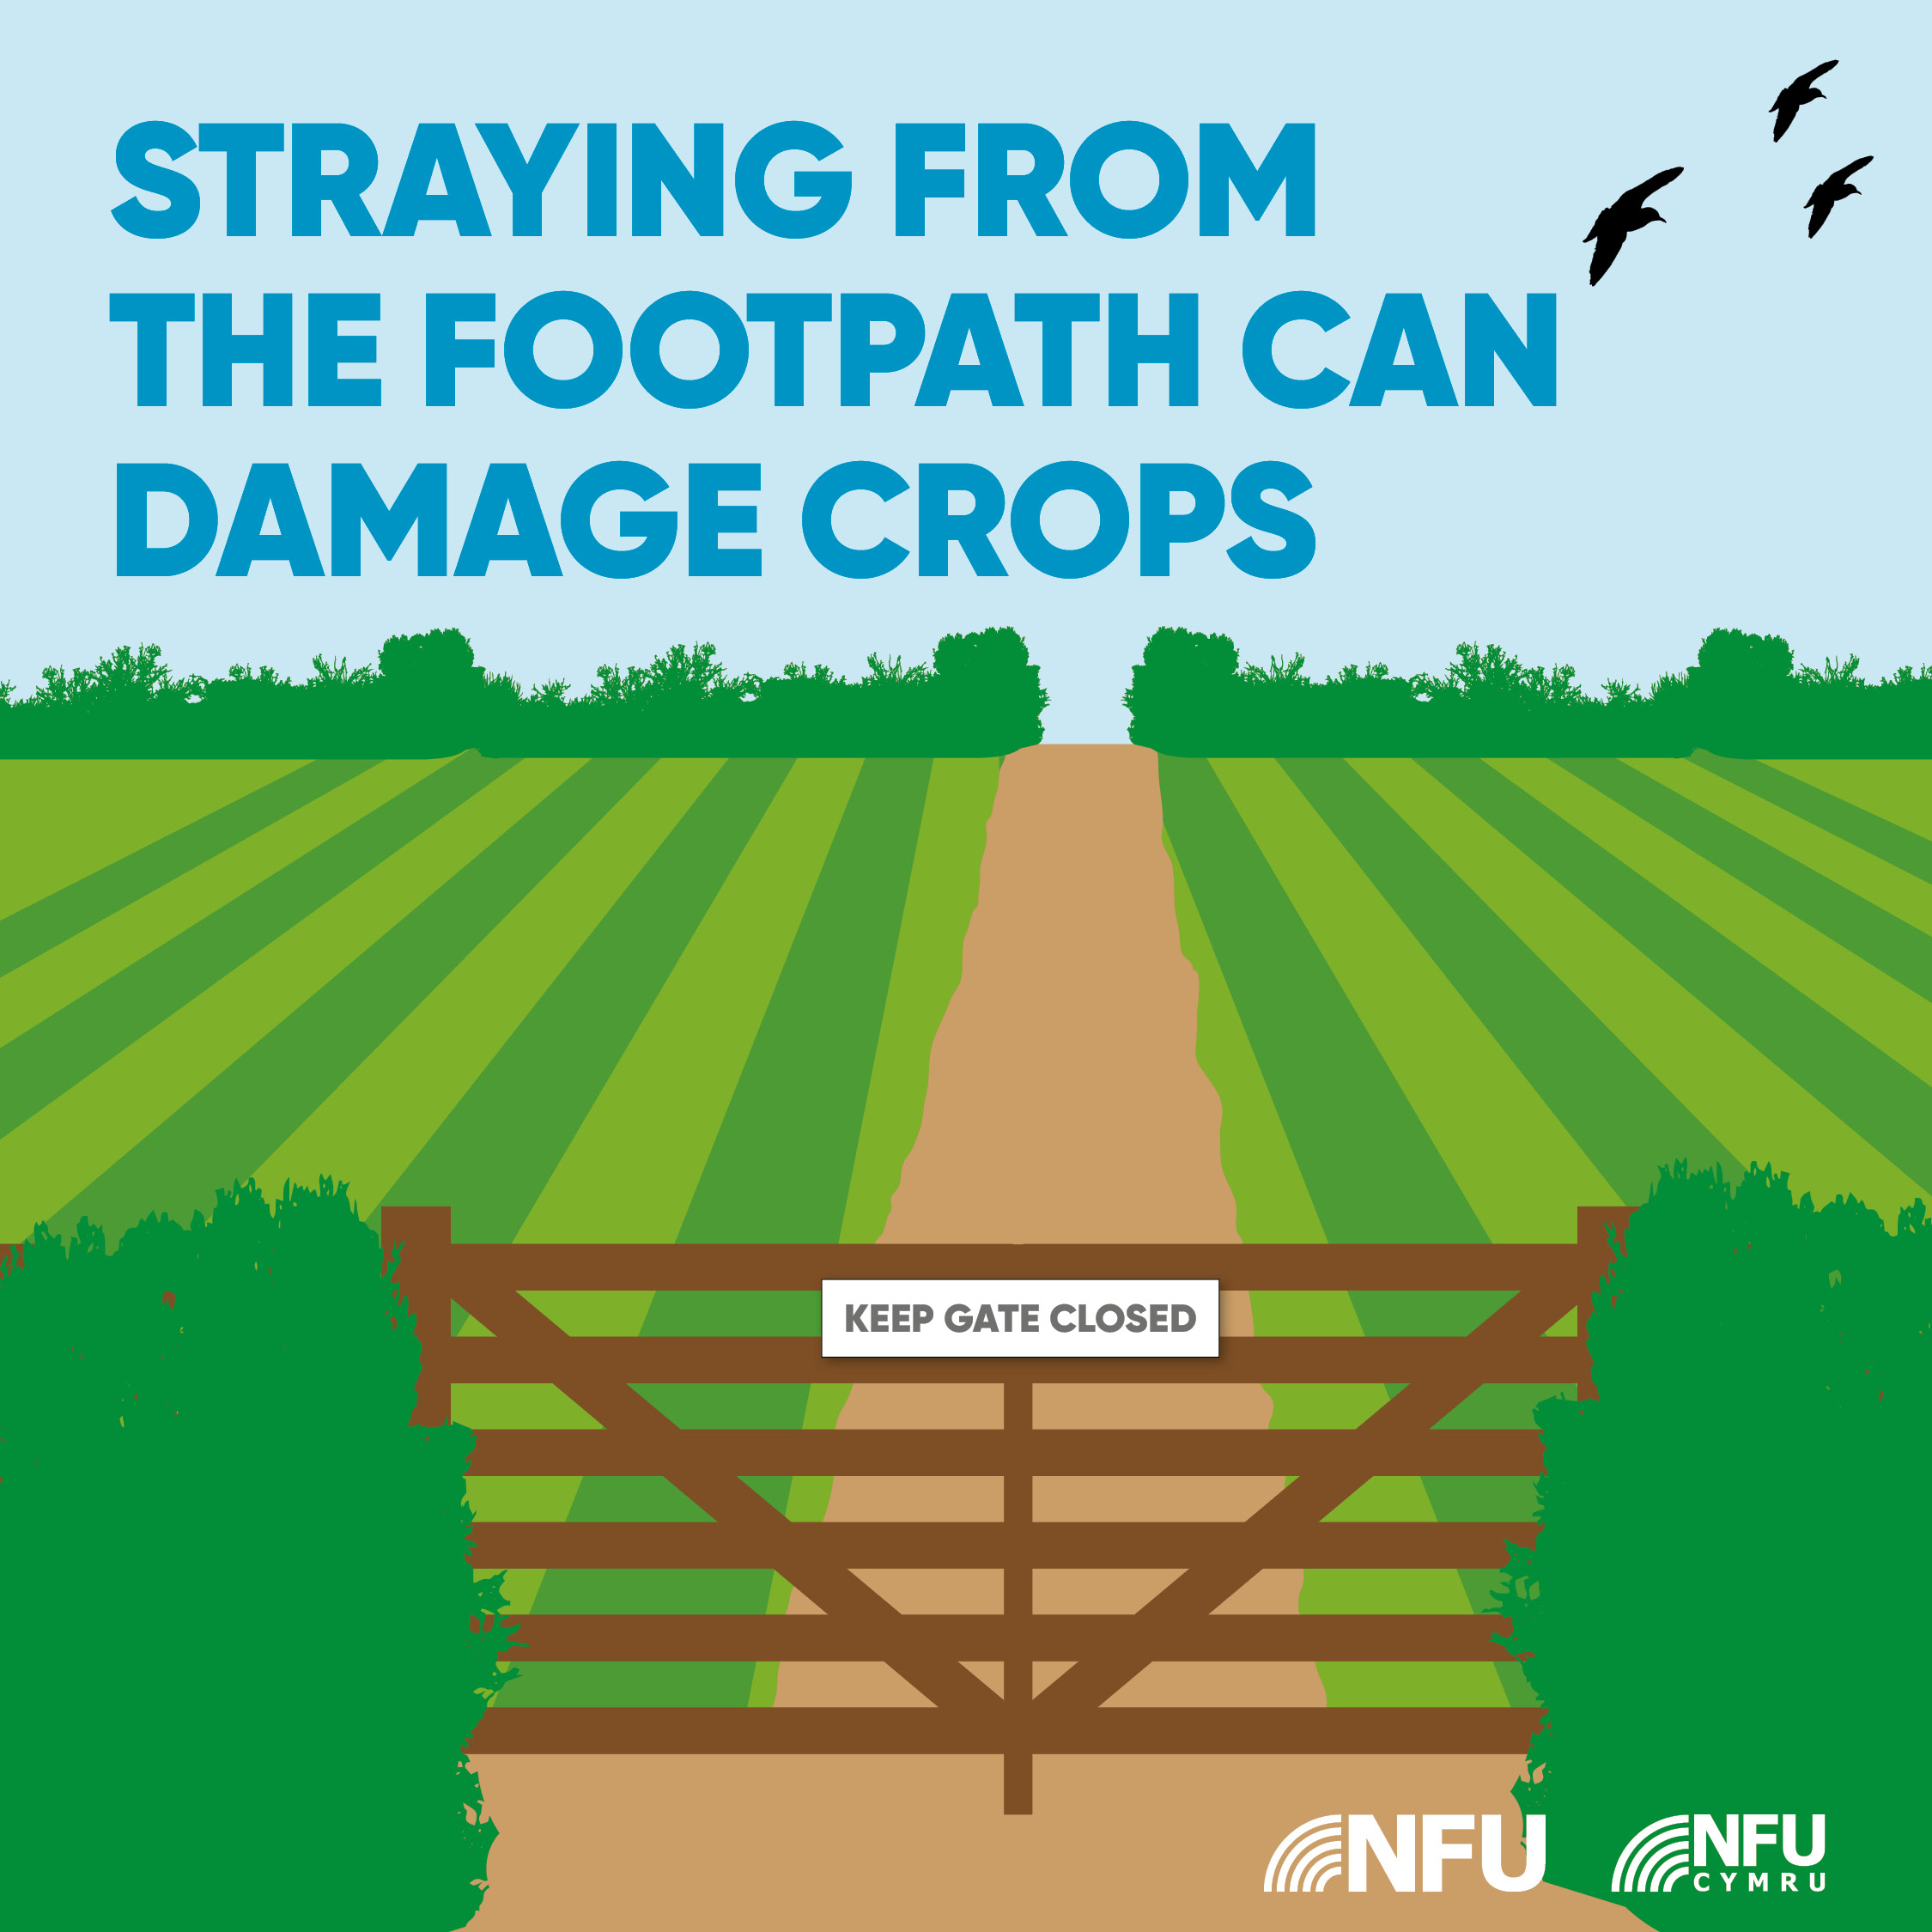 Countryside Code straying from footpath can damage crops NFU Facebook Instagram infographic